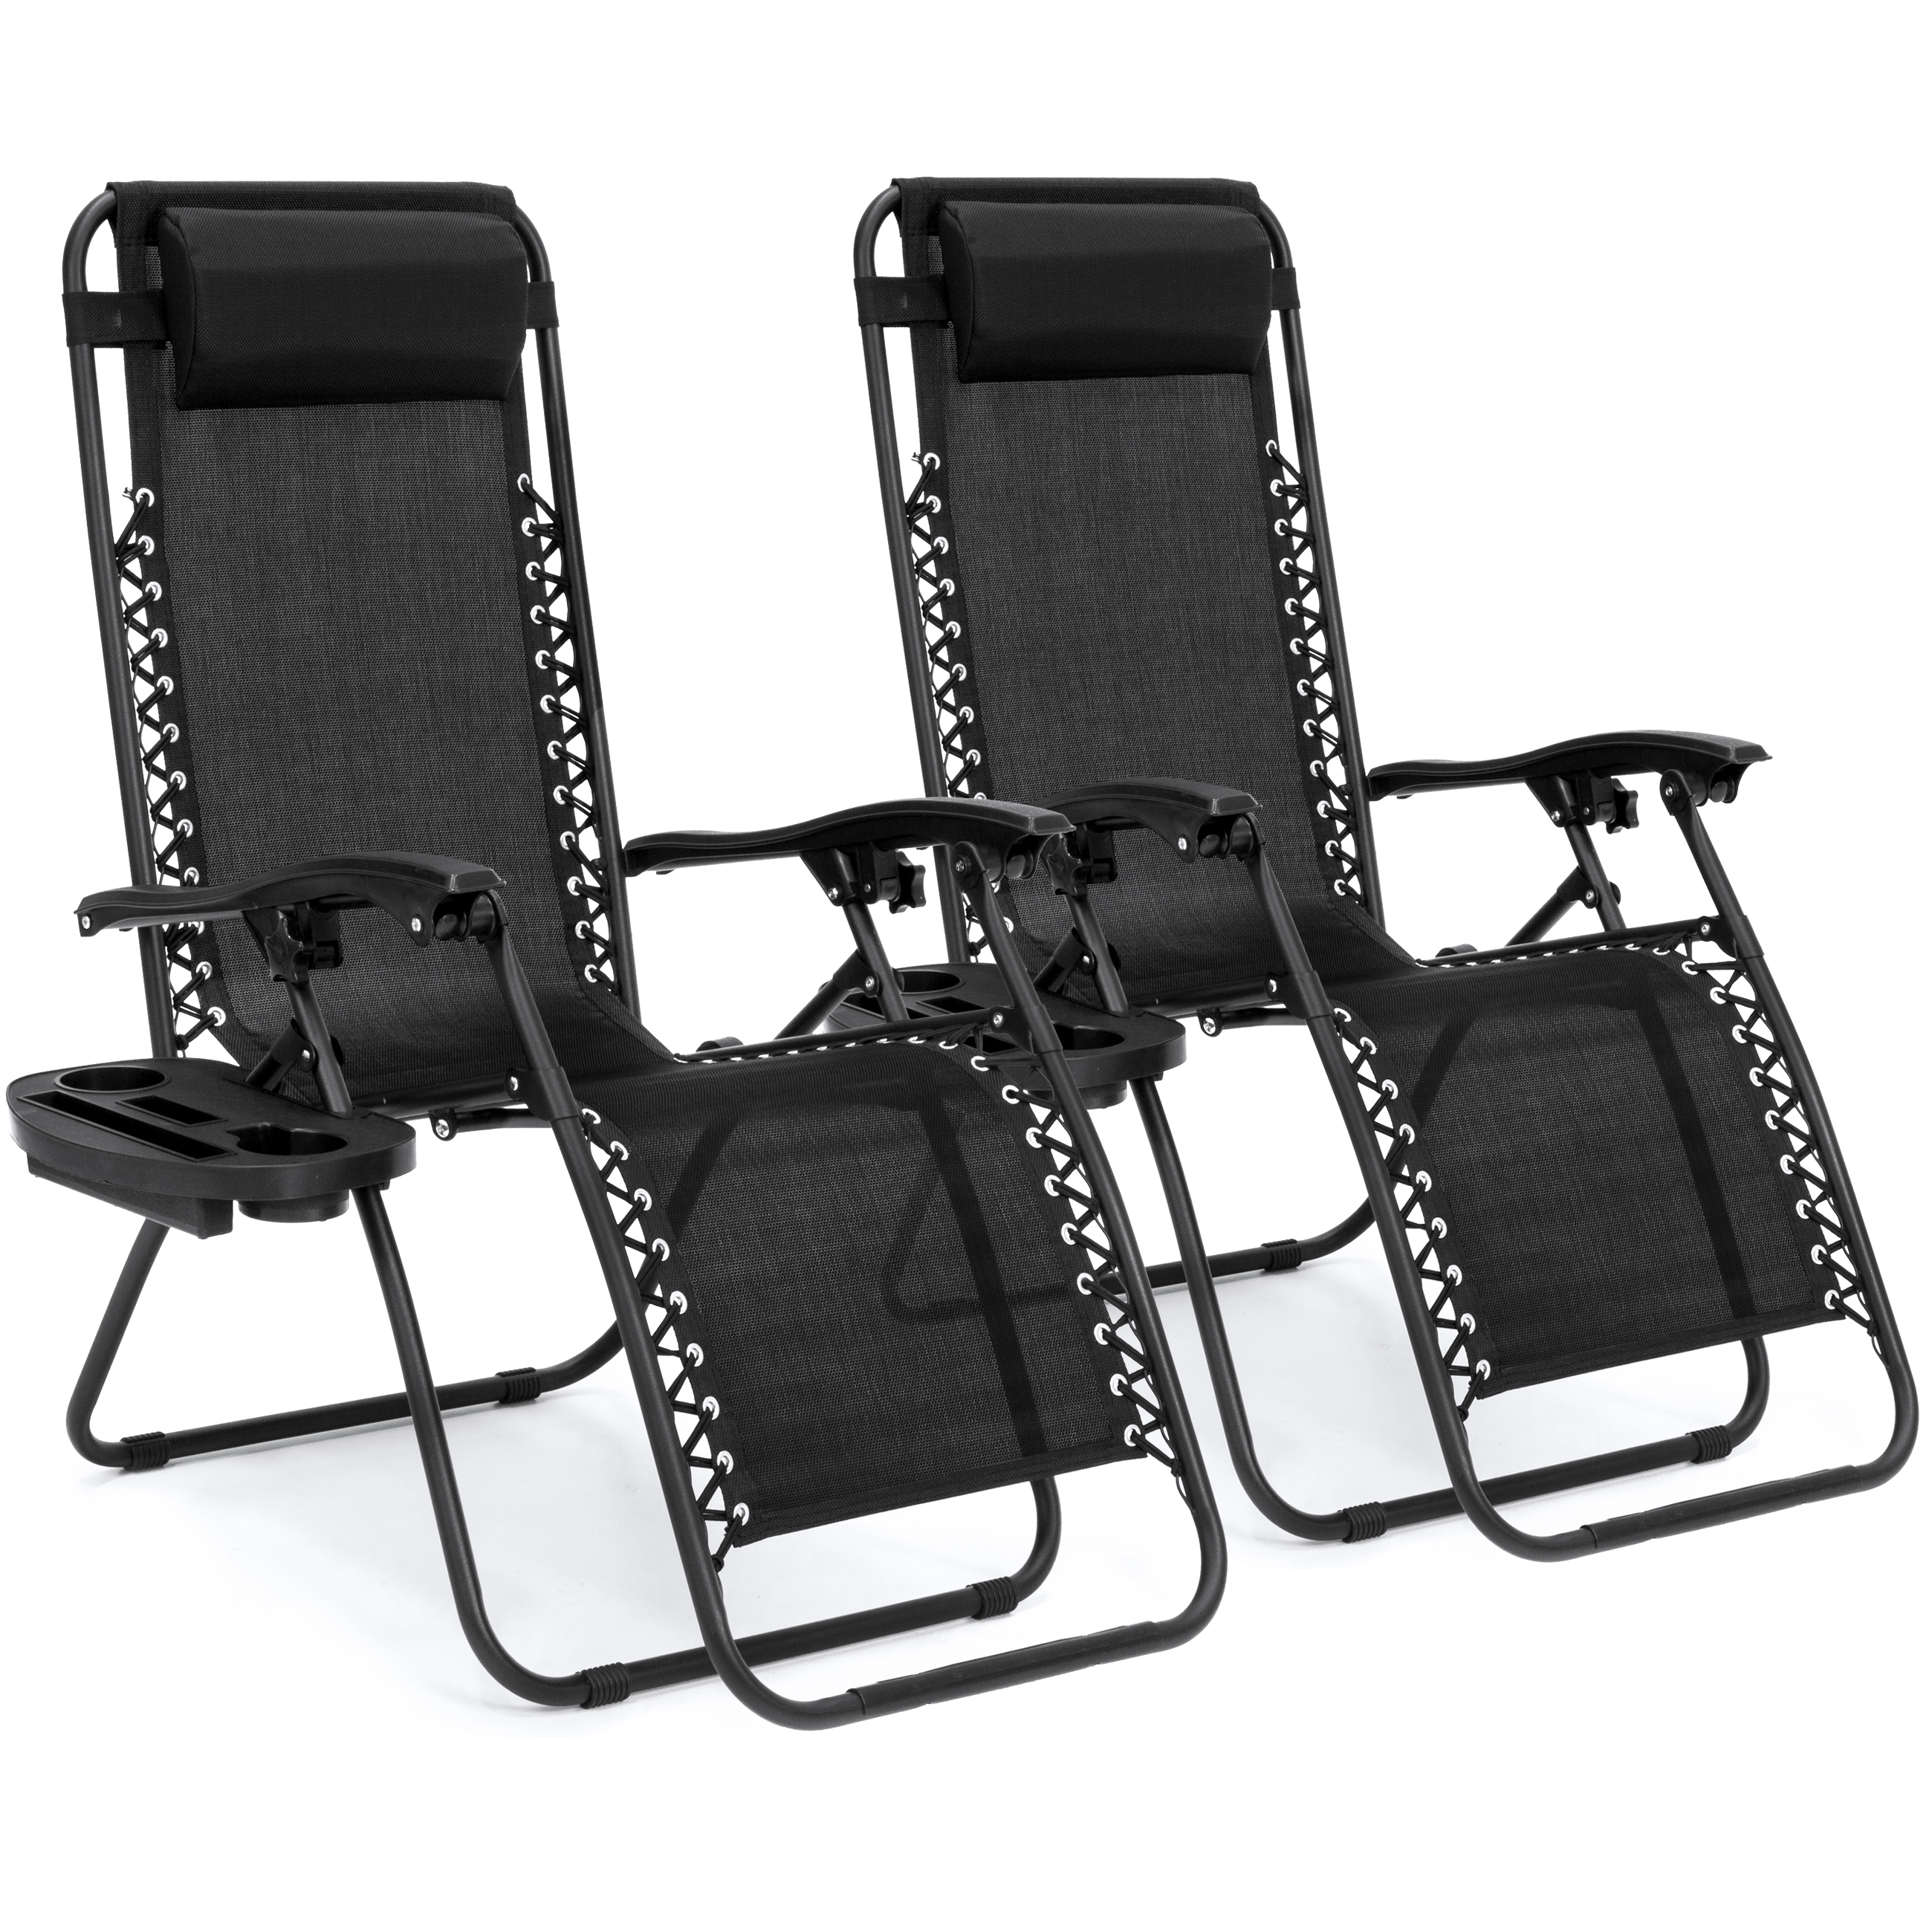 Zero Gravity Chairs Case Of (2) Lounge Patio Chairs Outdoor Yard Beach New